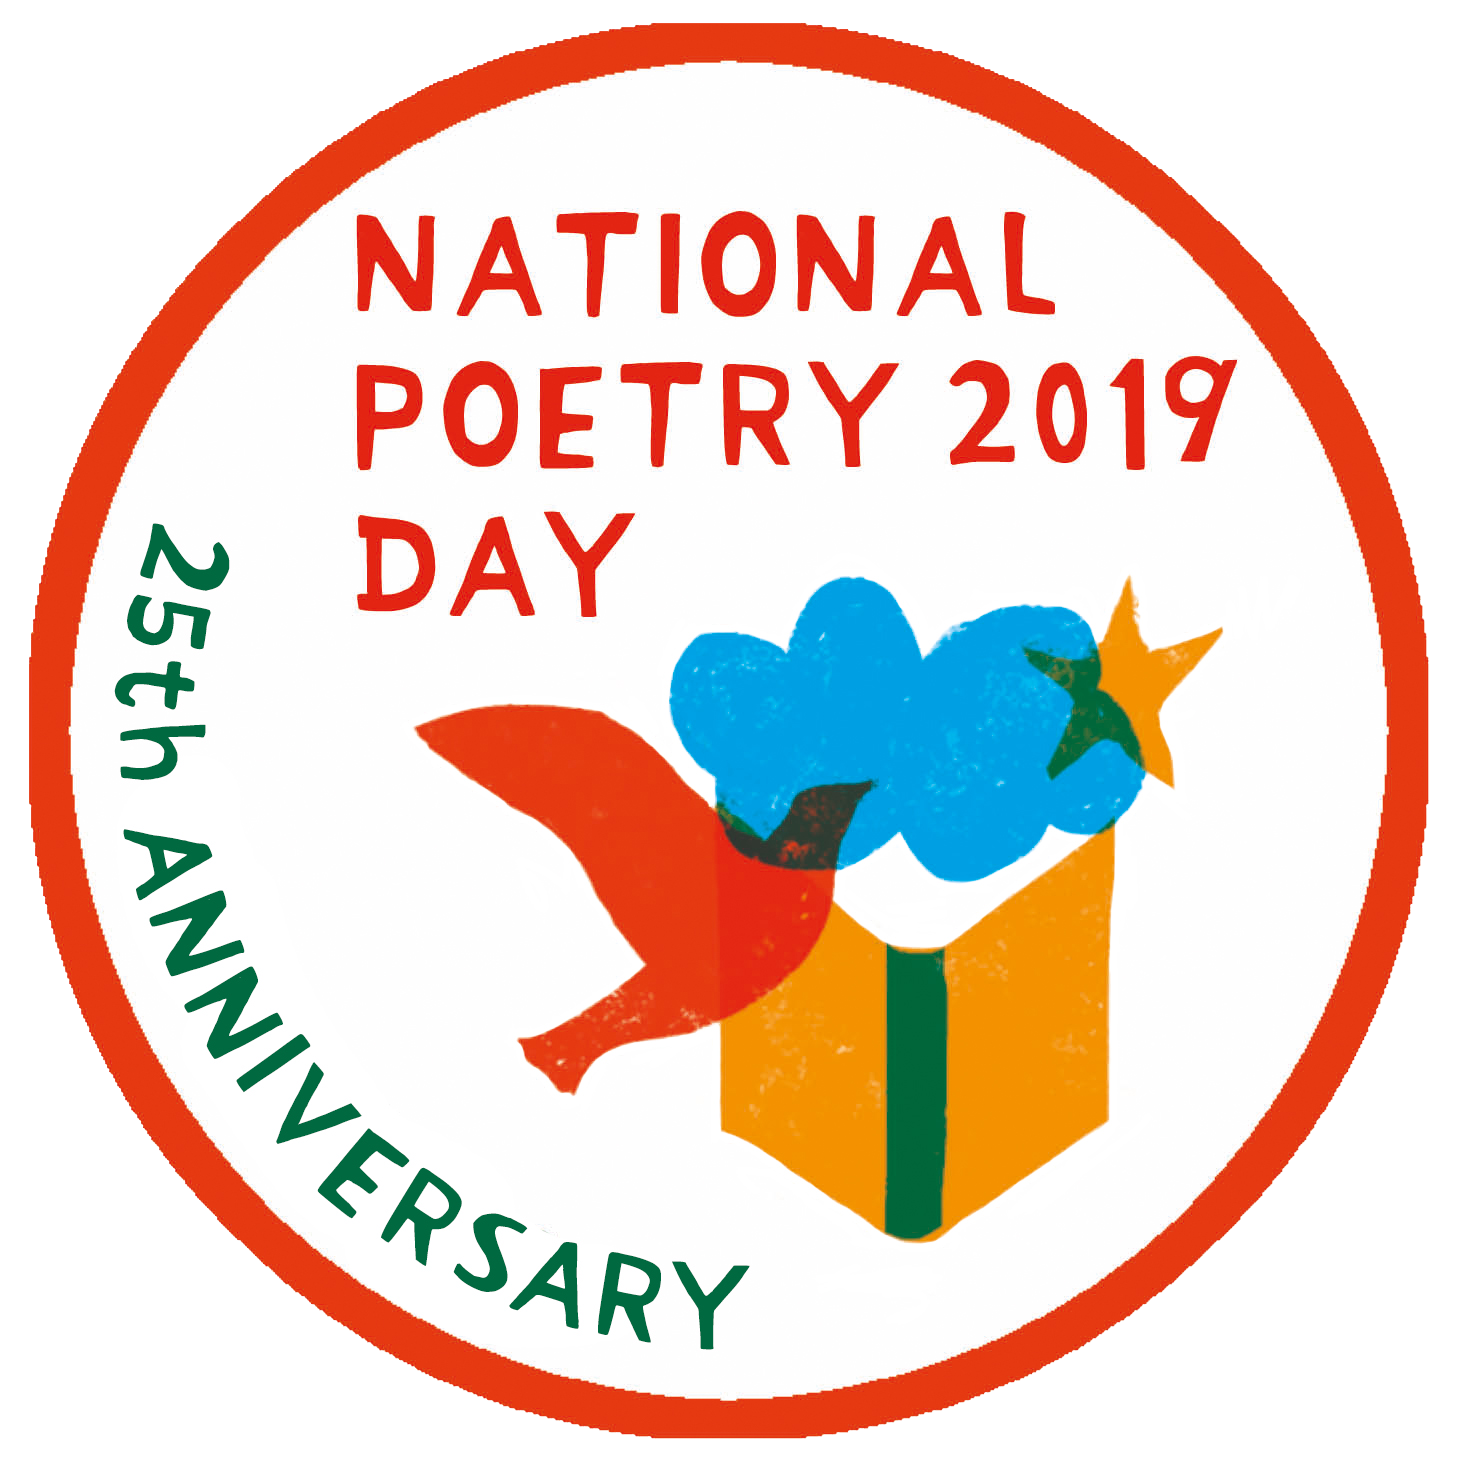 national poetry day 2019 logo